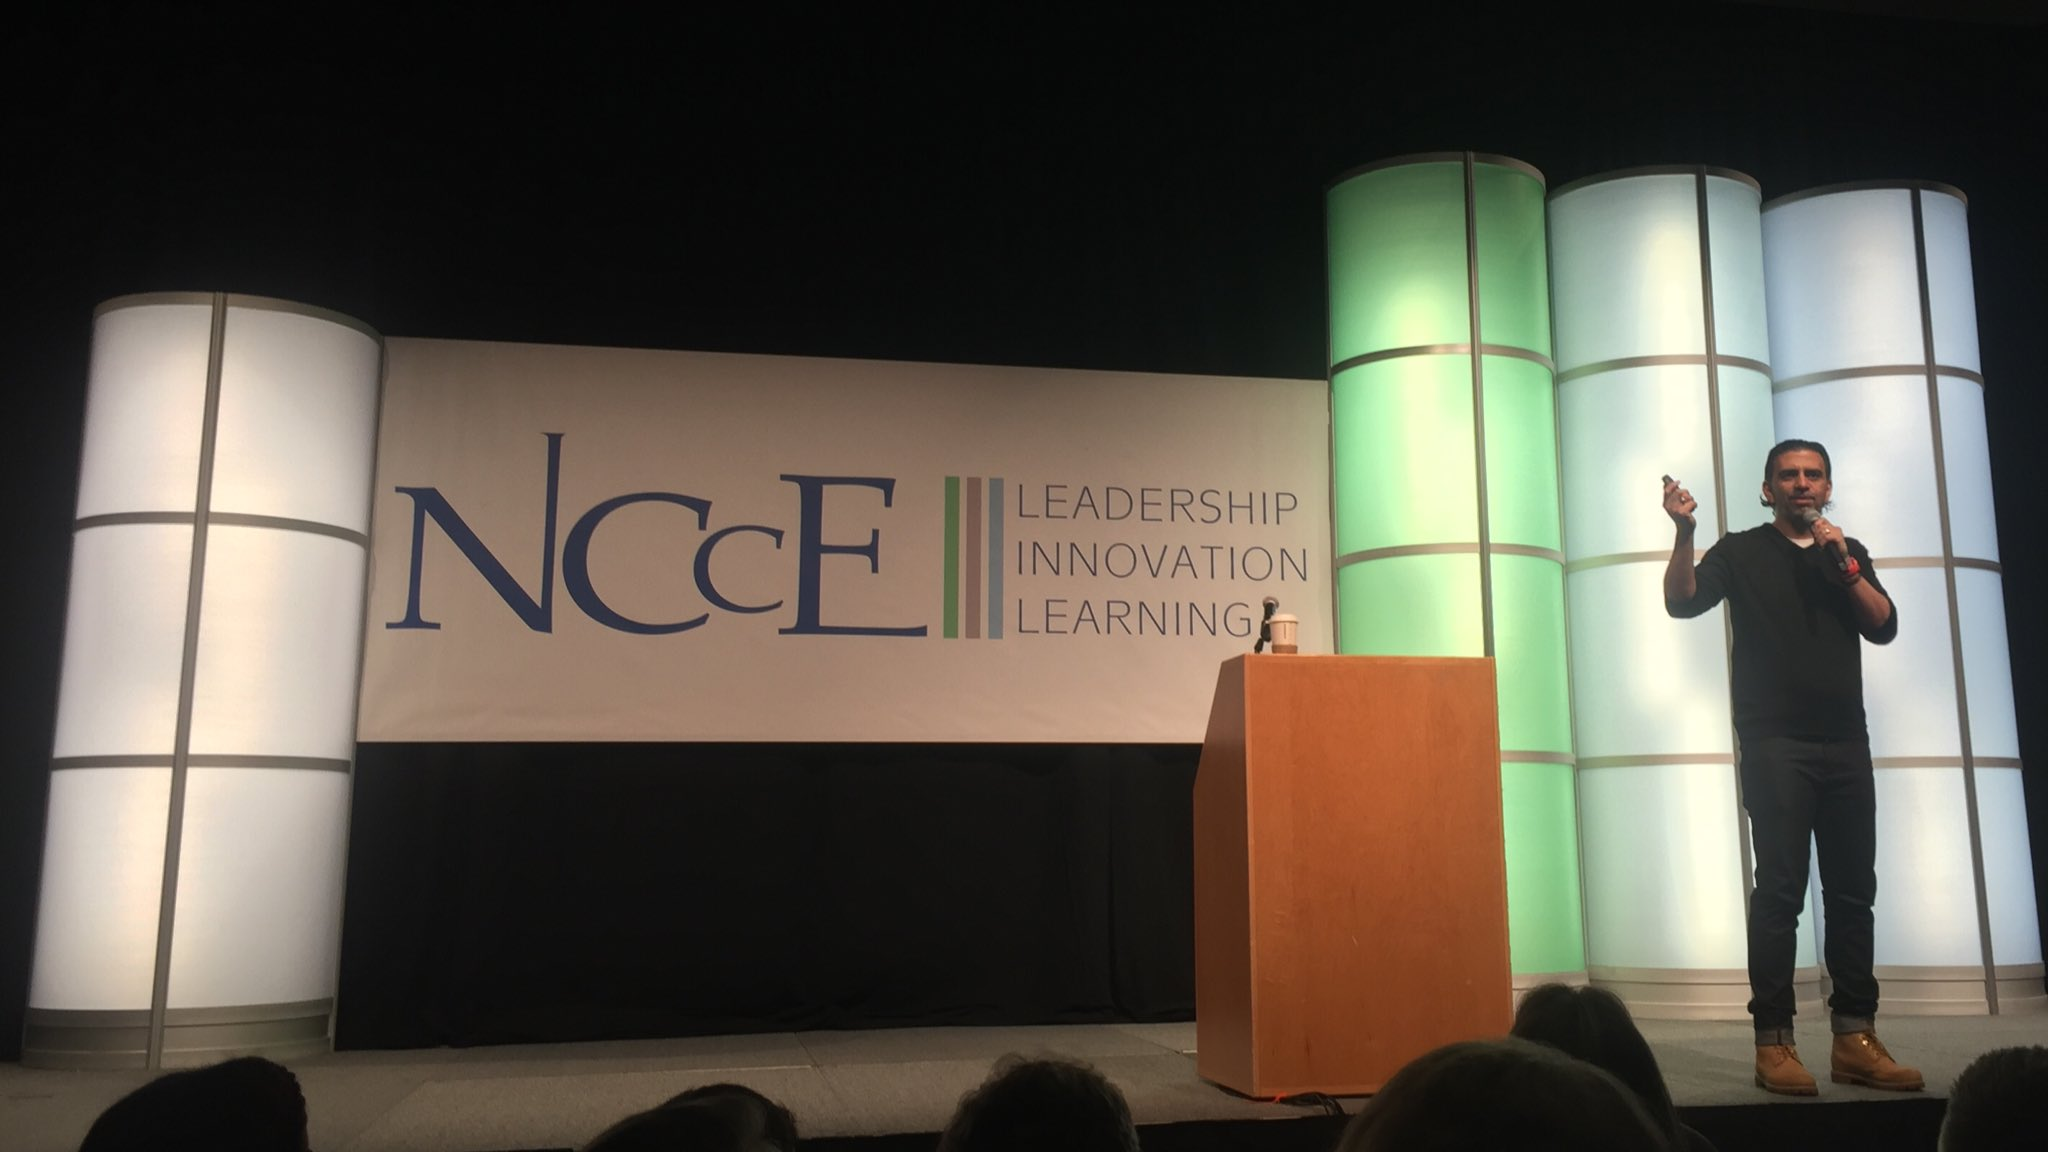 Opening keynote #NCCE17 @jcasap discussing the importance of education!!  Woot!  Woot!! 🤗. #nccechat https://t.co/Fh06kzgltE